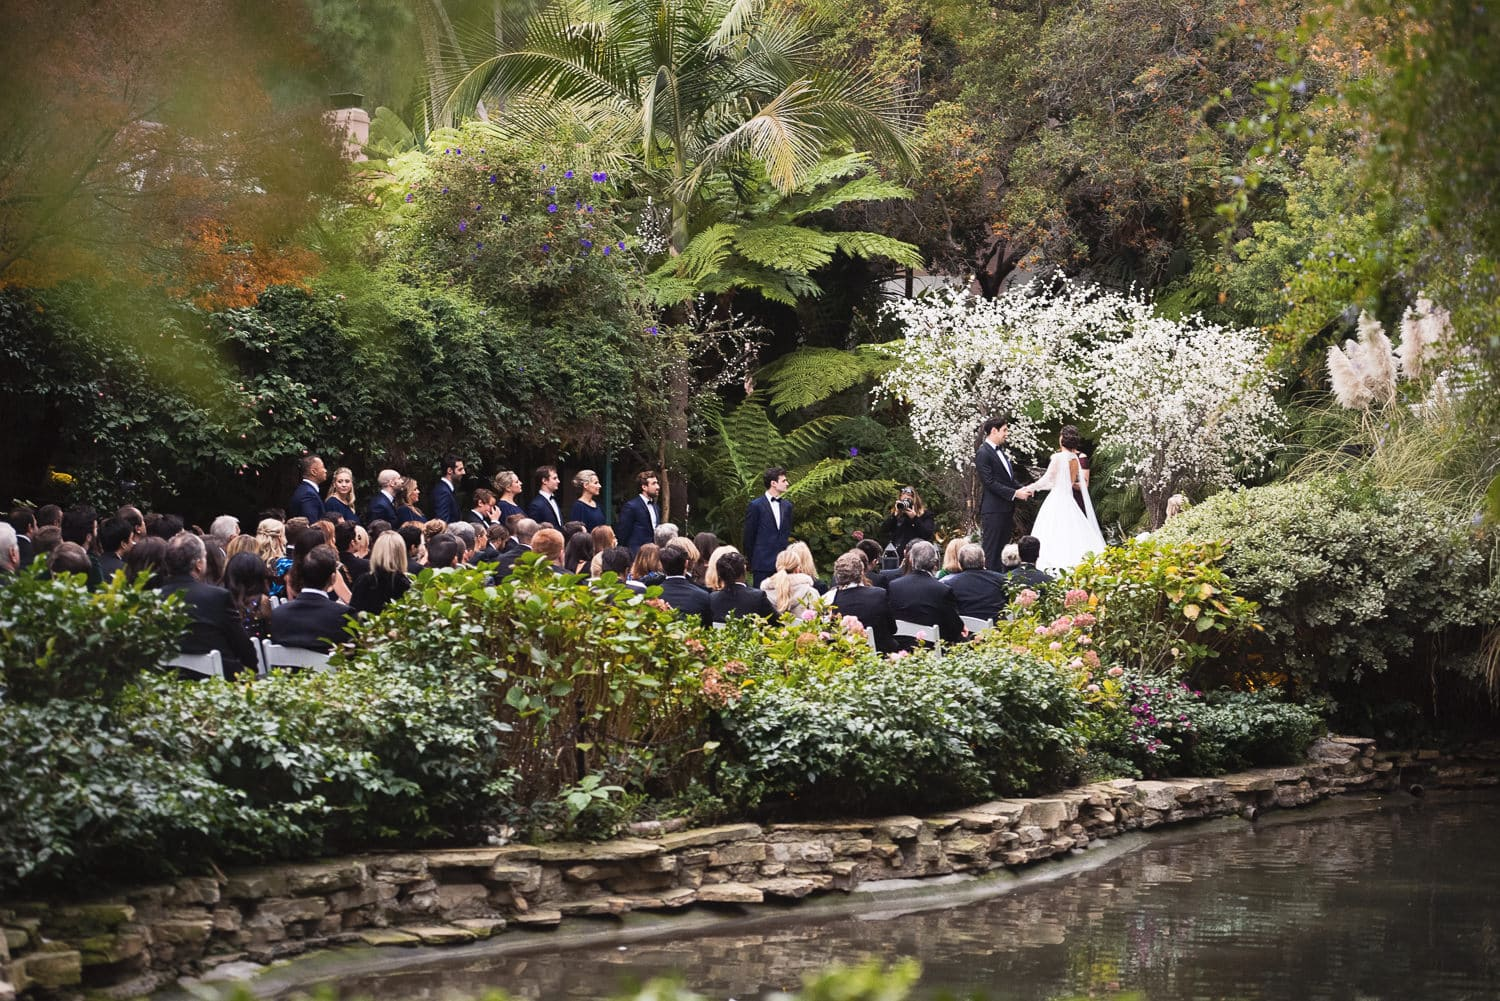 Wide photo of wedding ceremony from across the Hotel Bel-Air pond